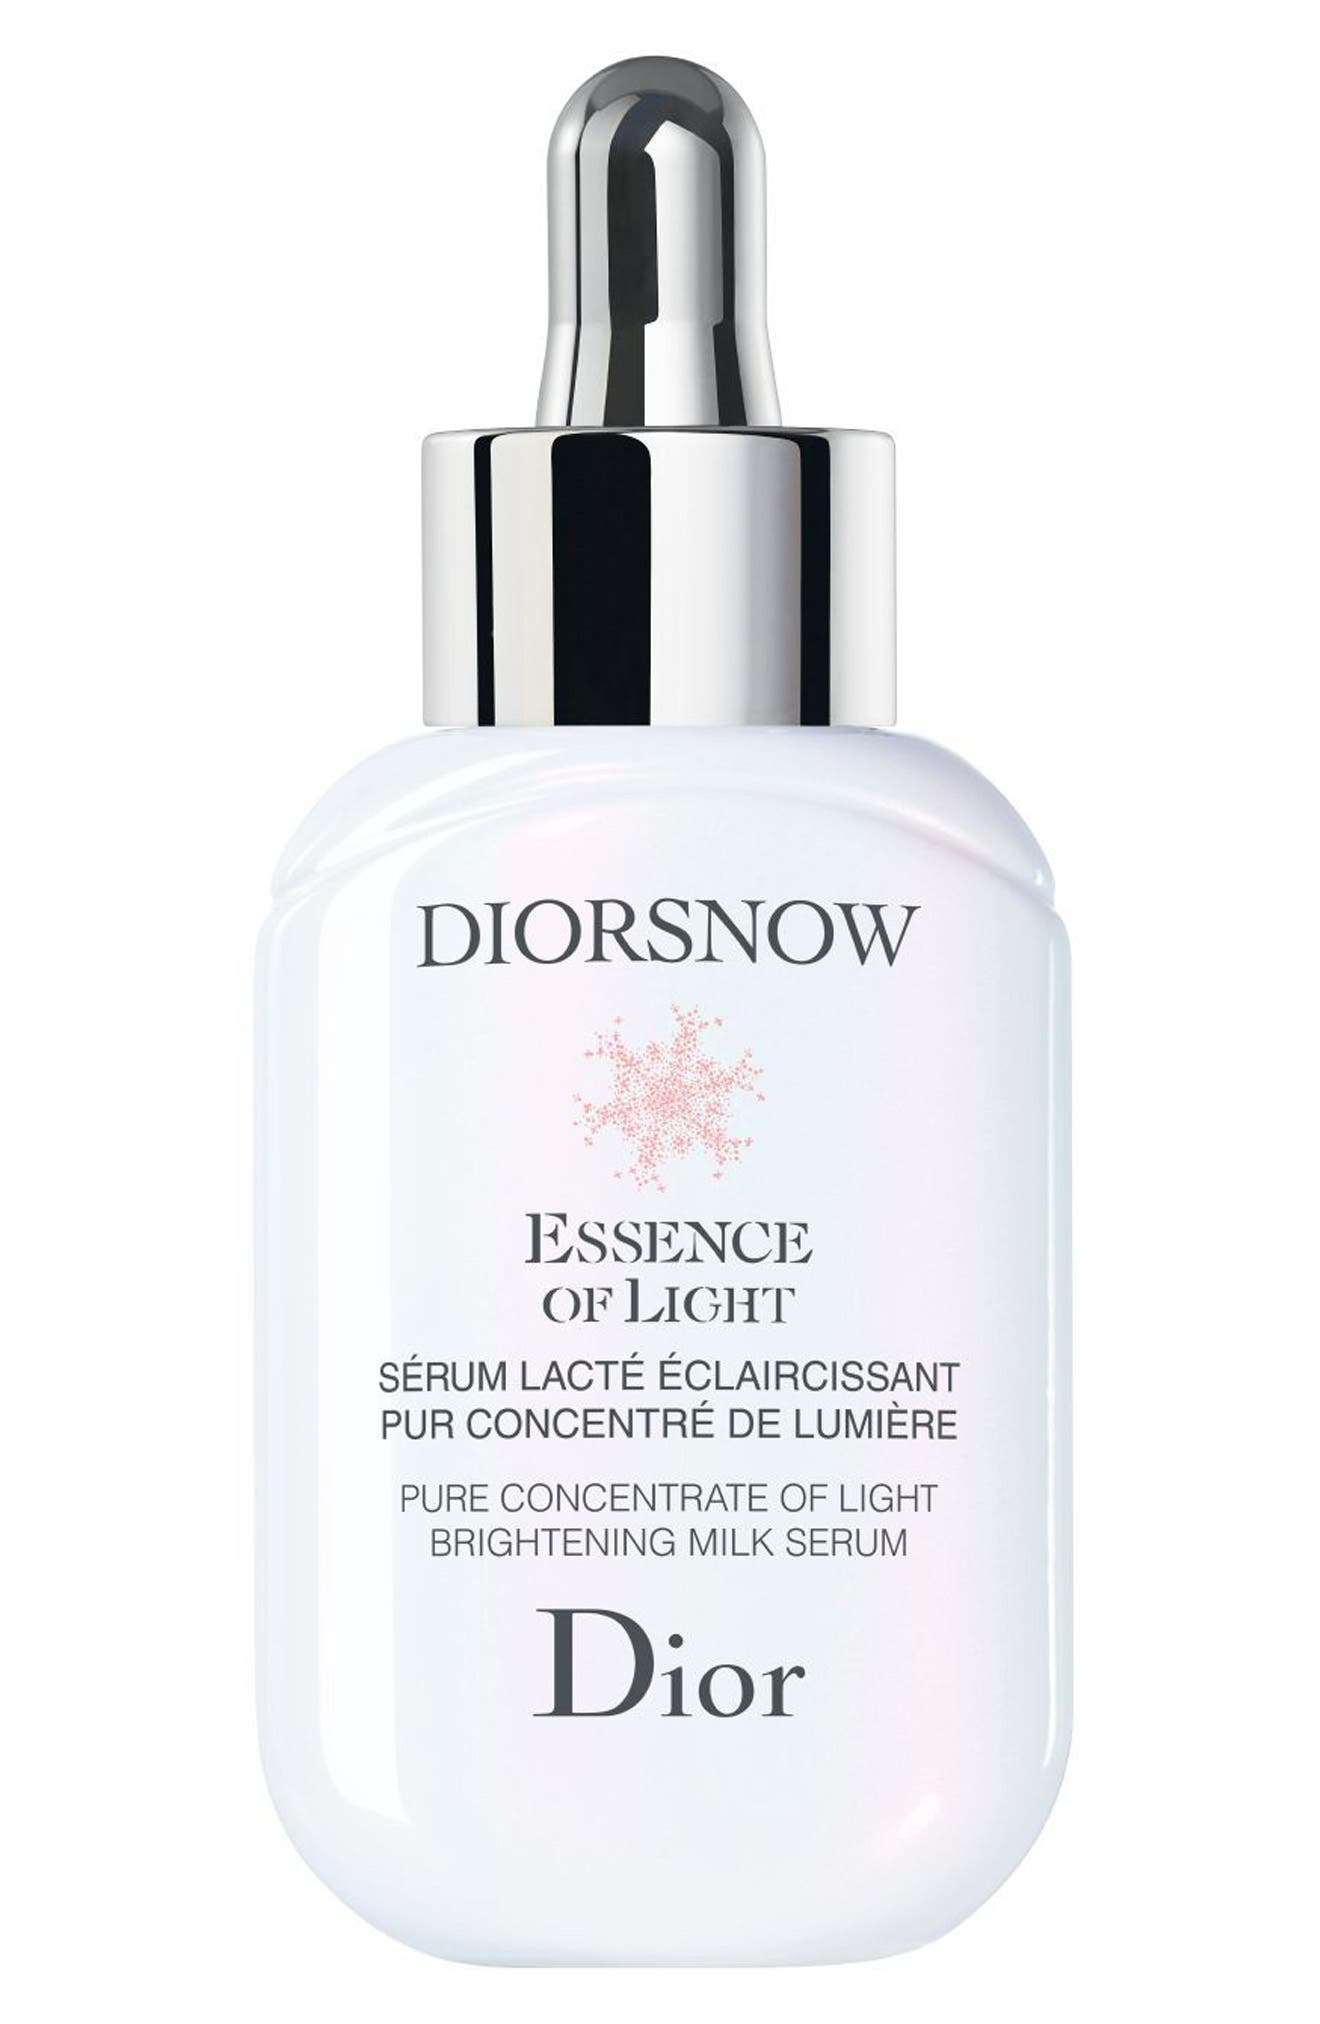 Diorsnow Essence of Light Brightening Milk Serum,                         Main,                         color, No Color